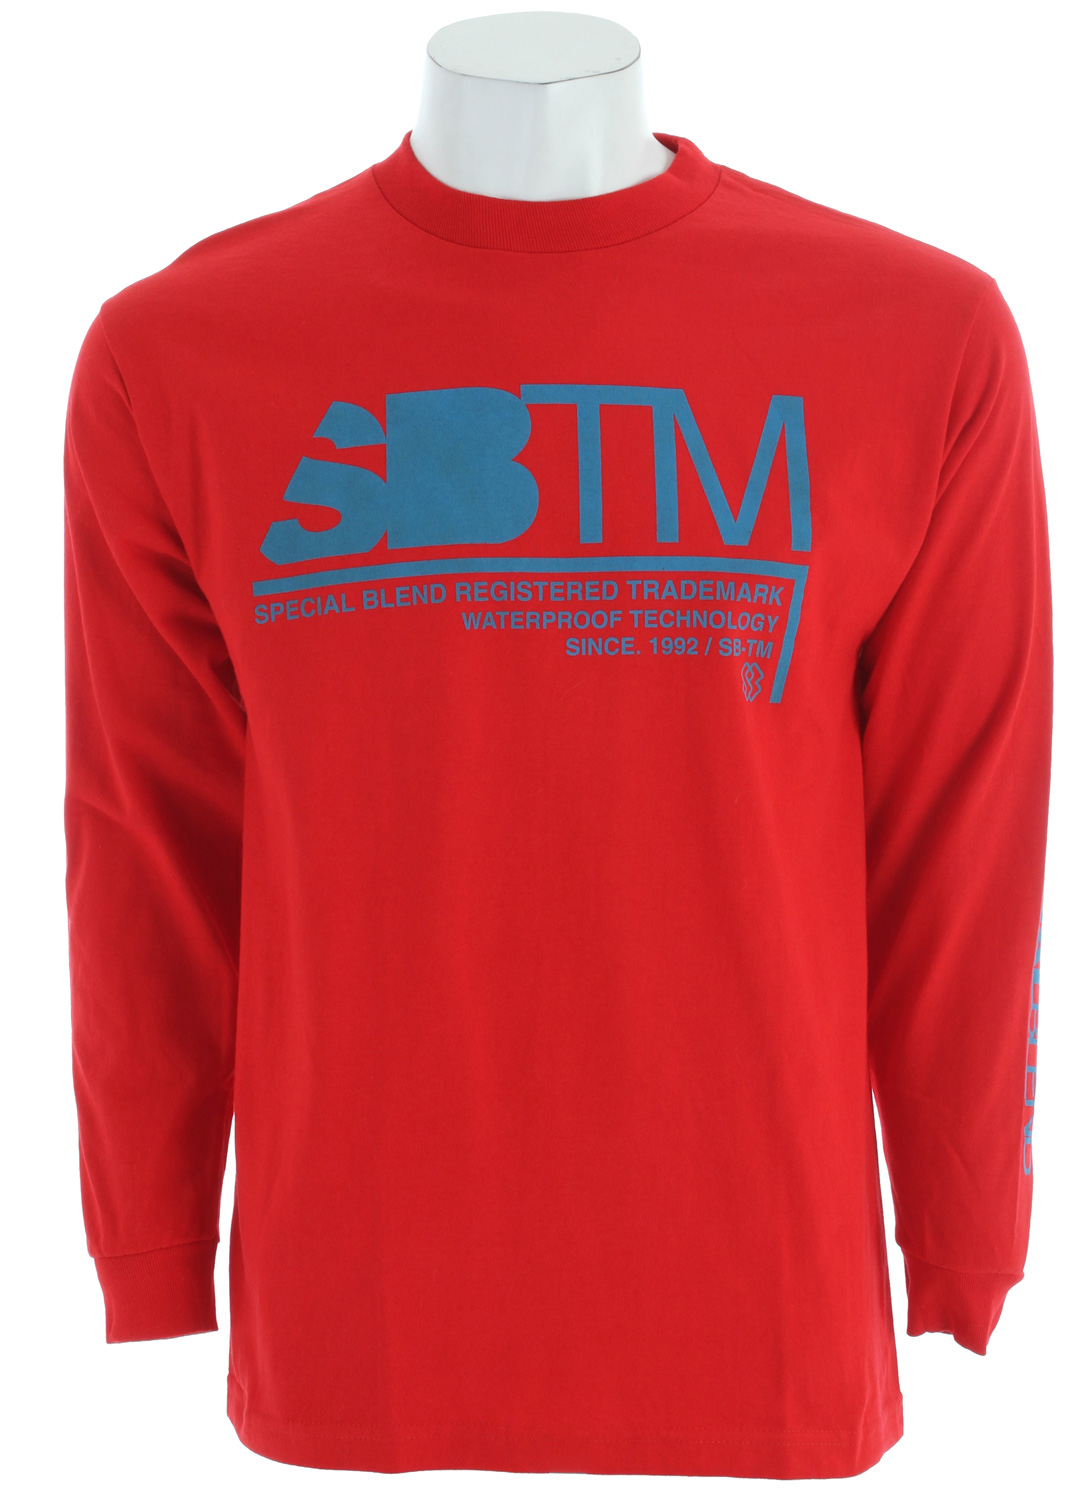 Key Features of The Special Blend SBTM L/S T-Shirt: Regular Fit Crew Neck Long Sleeve 100% cotton - $9.95